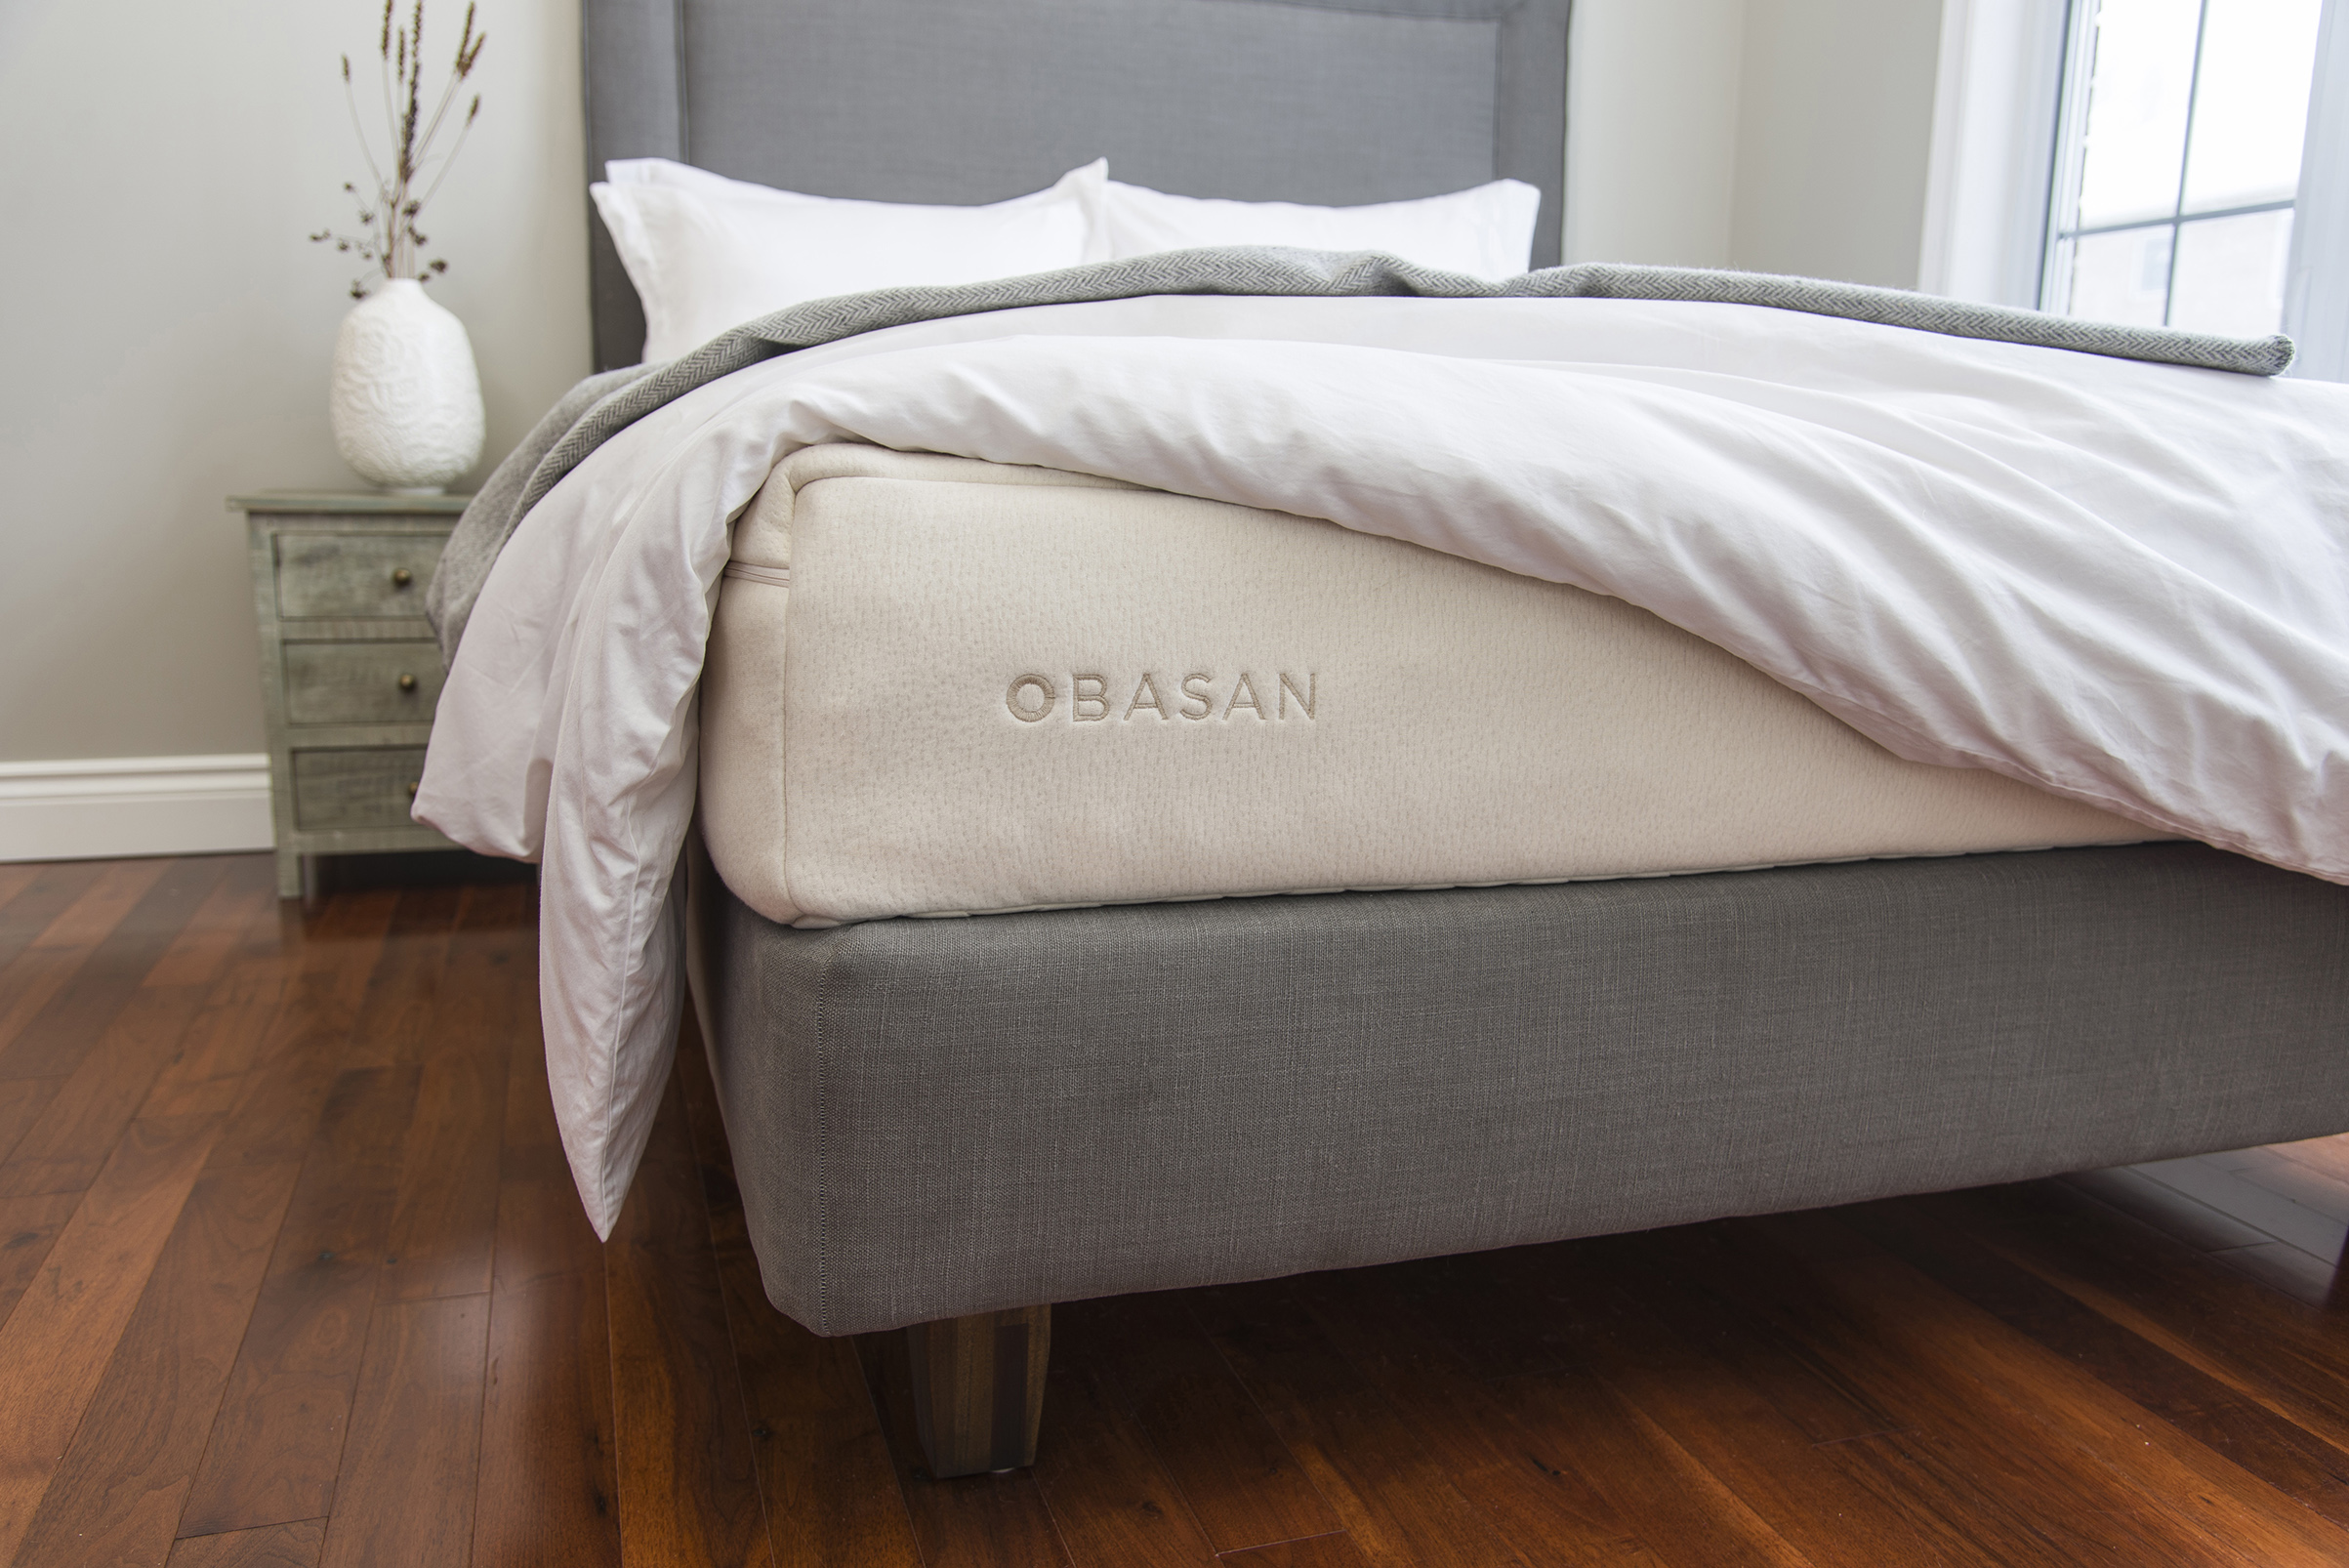 used and pillows comforters wool obasan all in our mattress organic pin batting mattresses